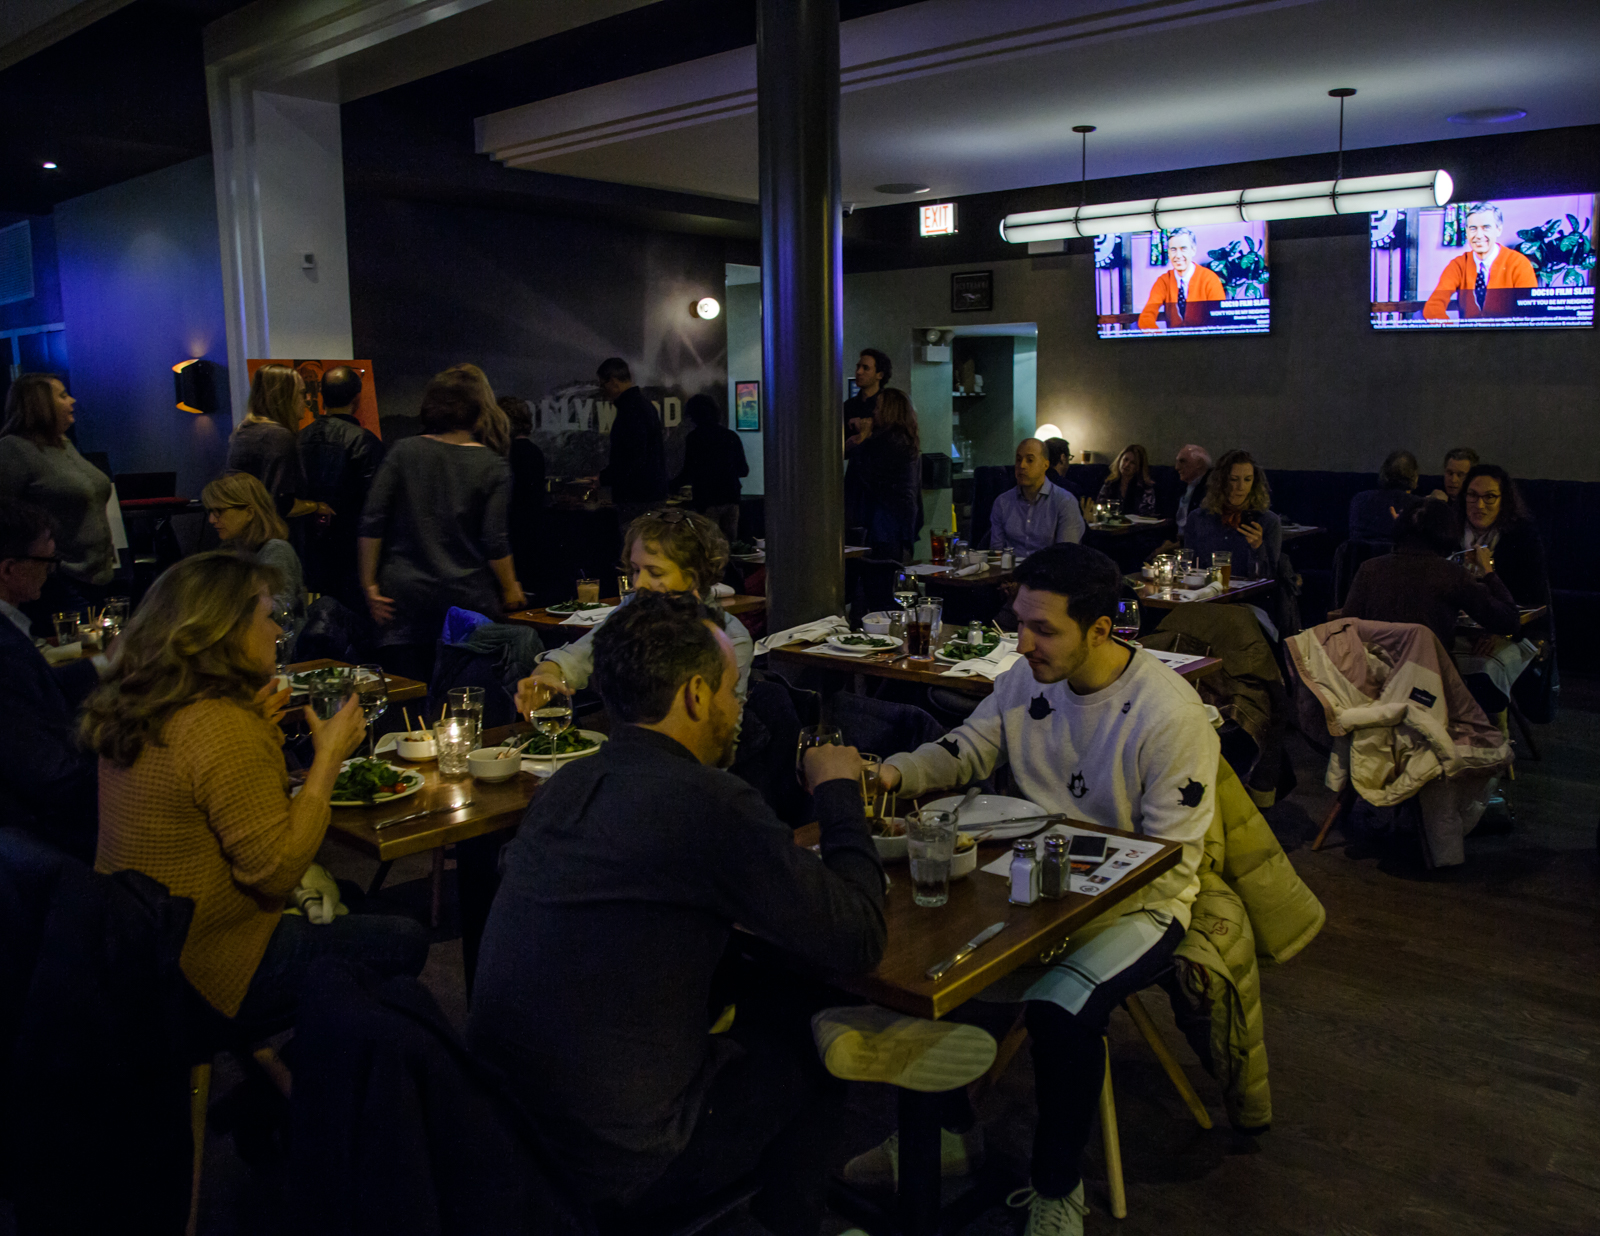 180222-dinner-and-docs-icarus-007.jpg